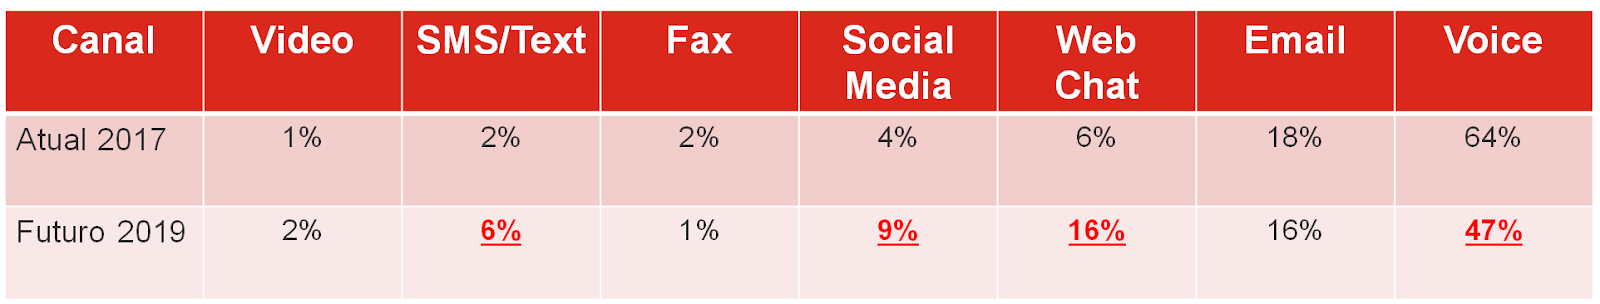 Canal Atual 2017 Futuro 2019 Video SMS/Text 60/0 Fax Social Media 9 0/0 Web Chat Email Voice 47%